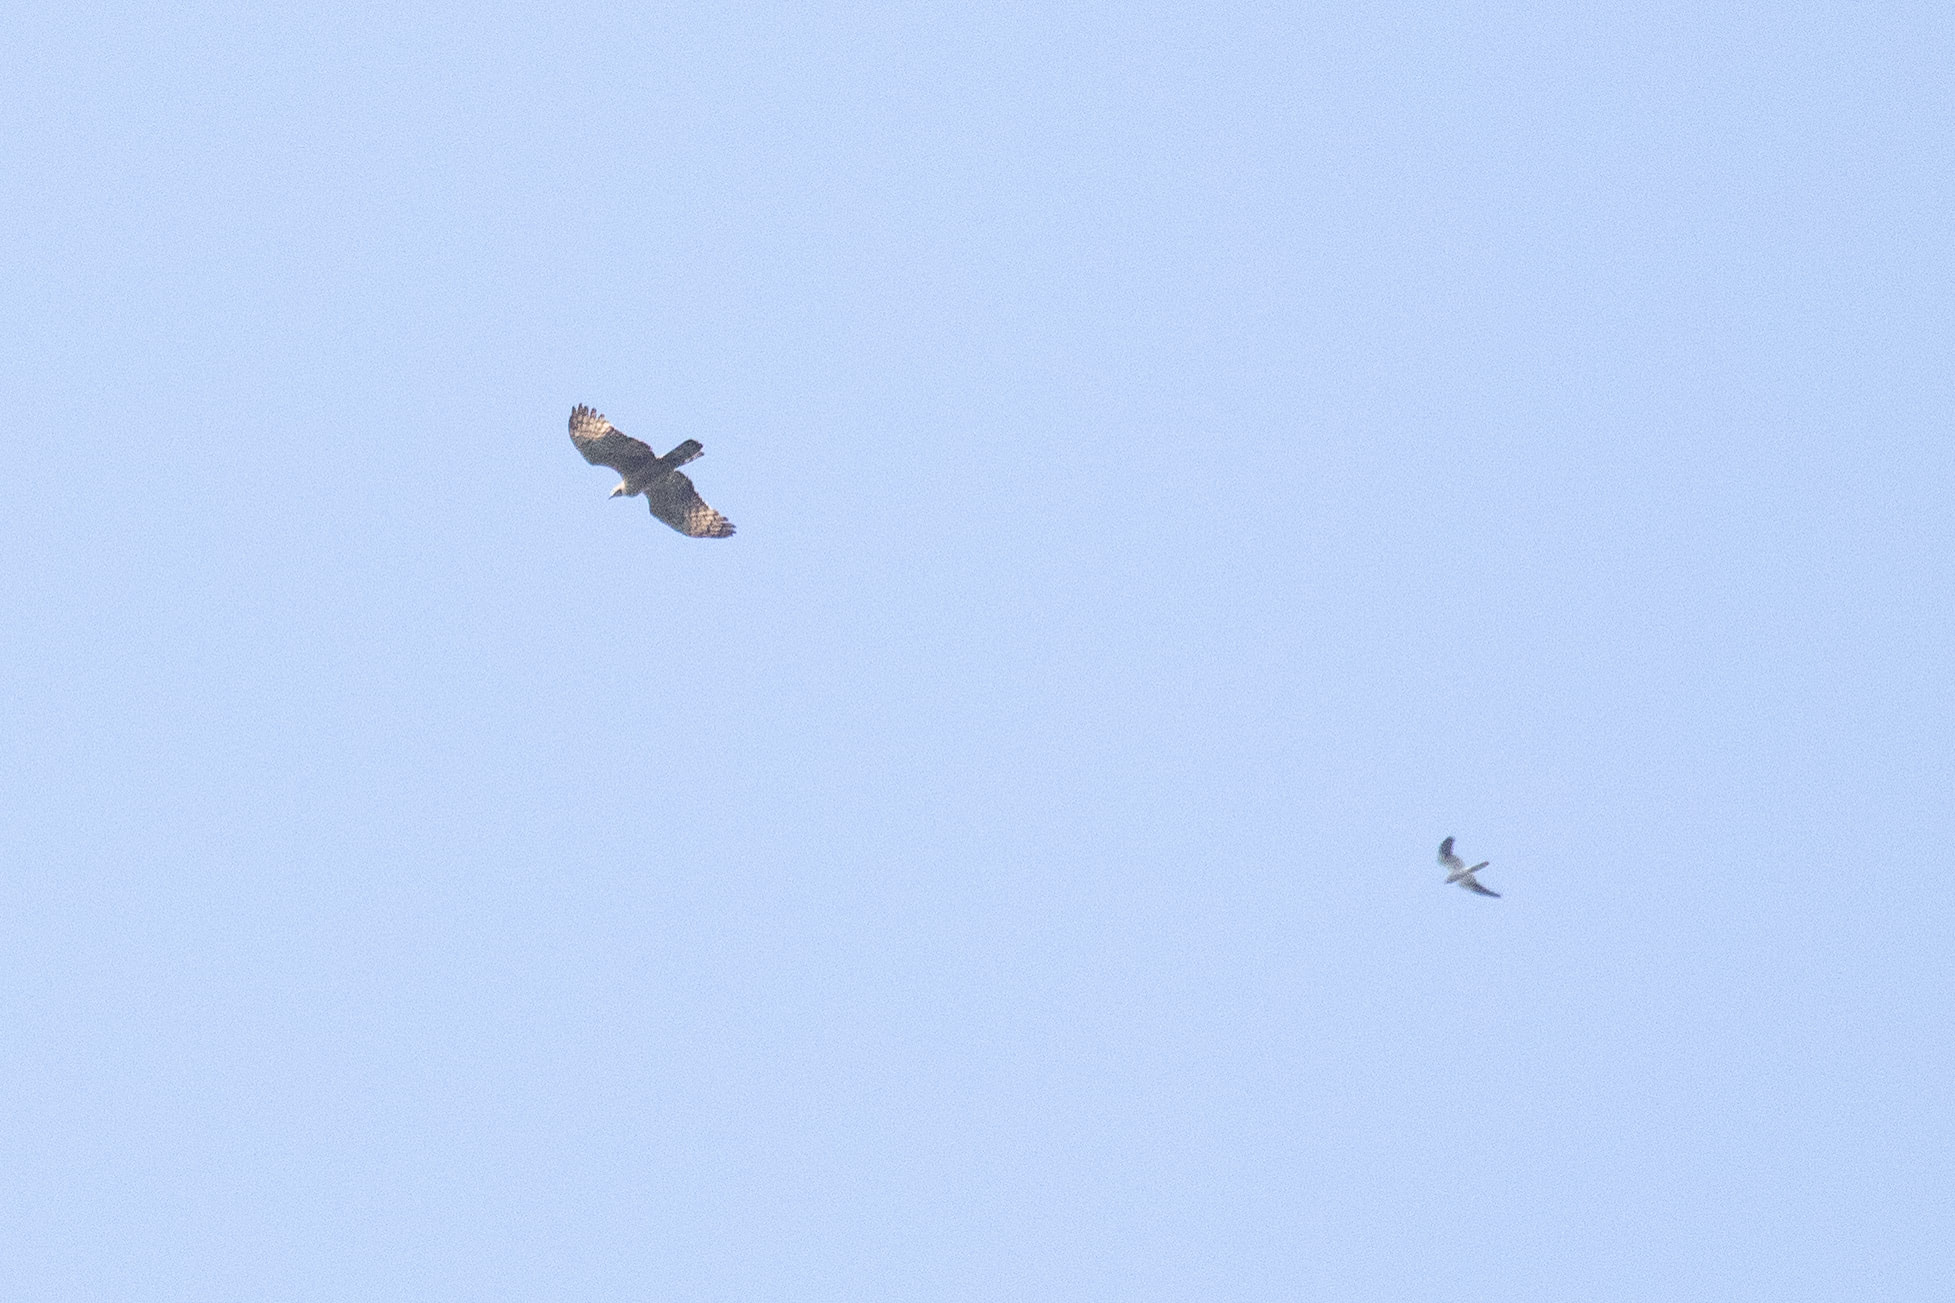 September 1st.  The first Crested Honey Buzzard of the season, an adult female, and an adult male Montagu's Harrier.